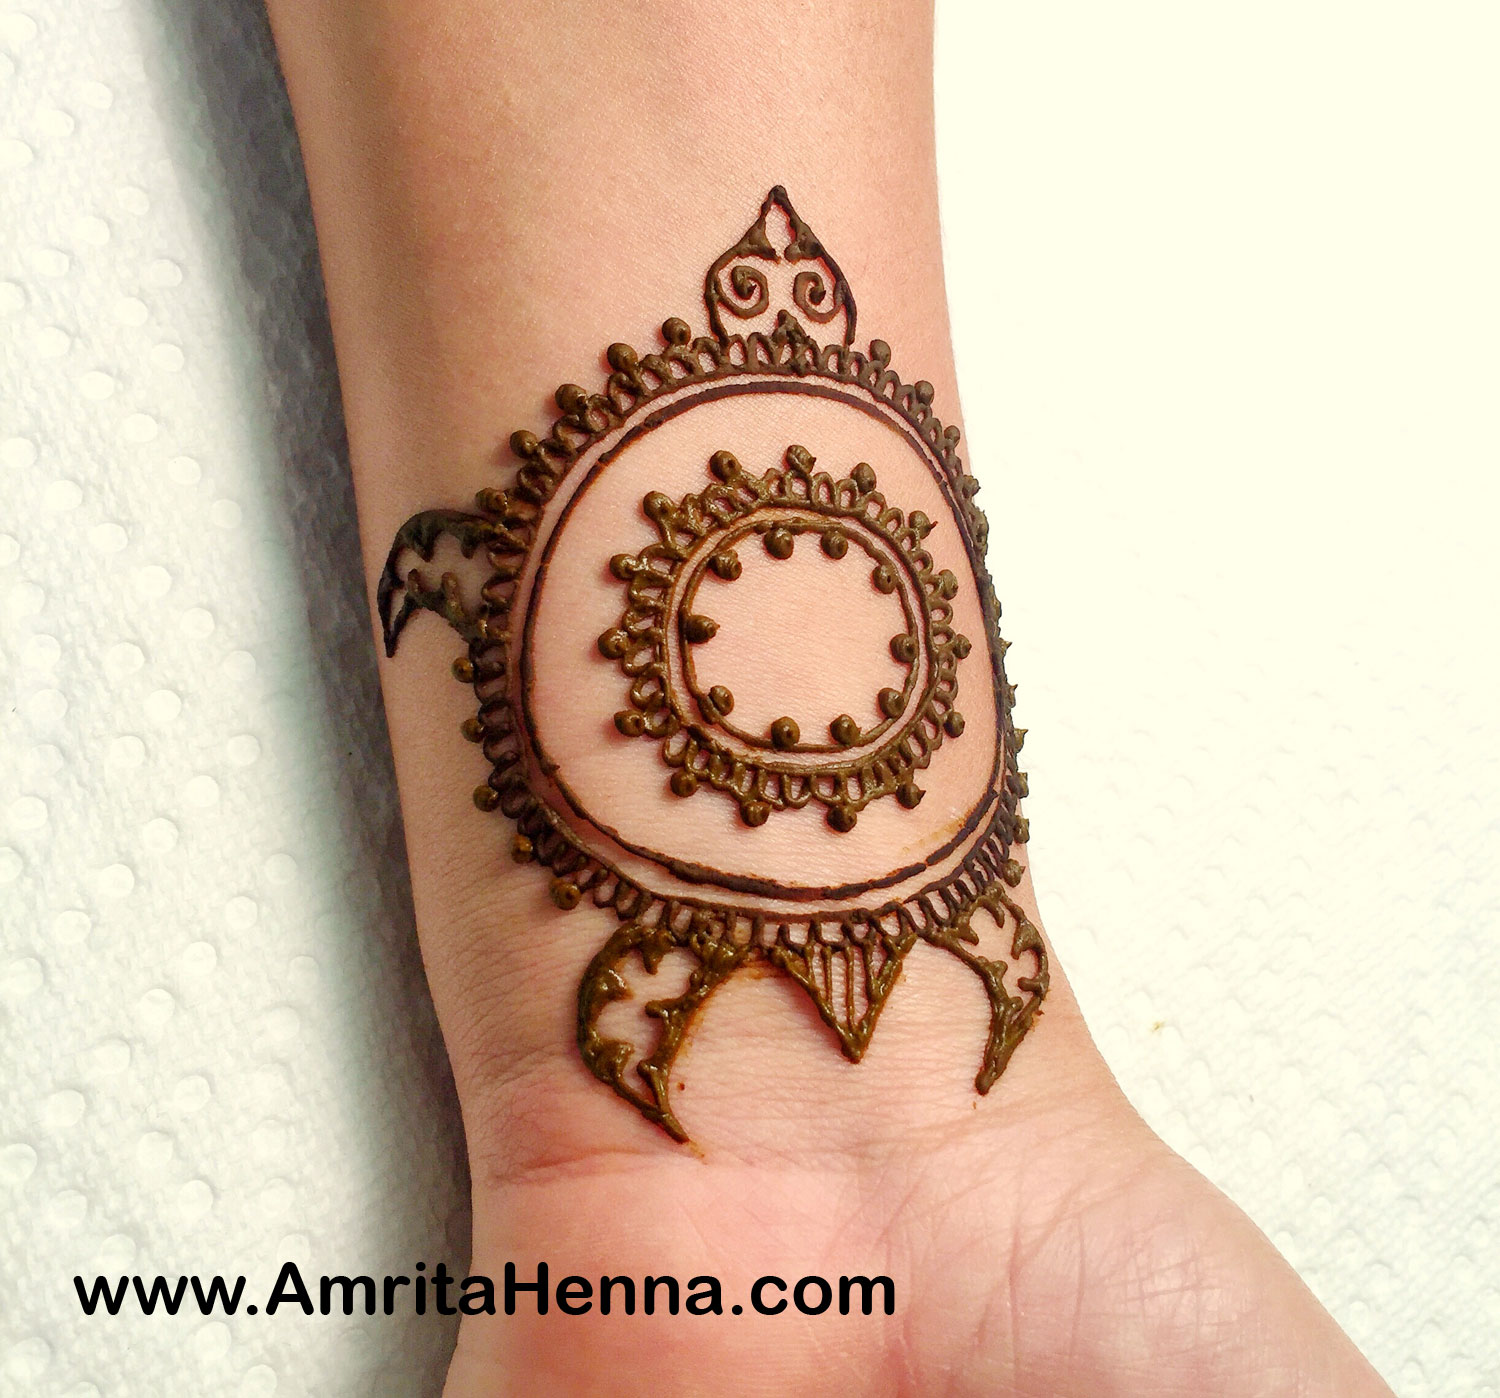 Easy Henna Turtle Design - Simple and Quick Turtle Design for Mehndi Artists - Cute Henna Turtle Design for Kids - Best Mehendi Turtle Design Idea - Henna Drawings